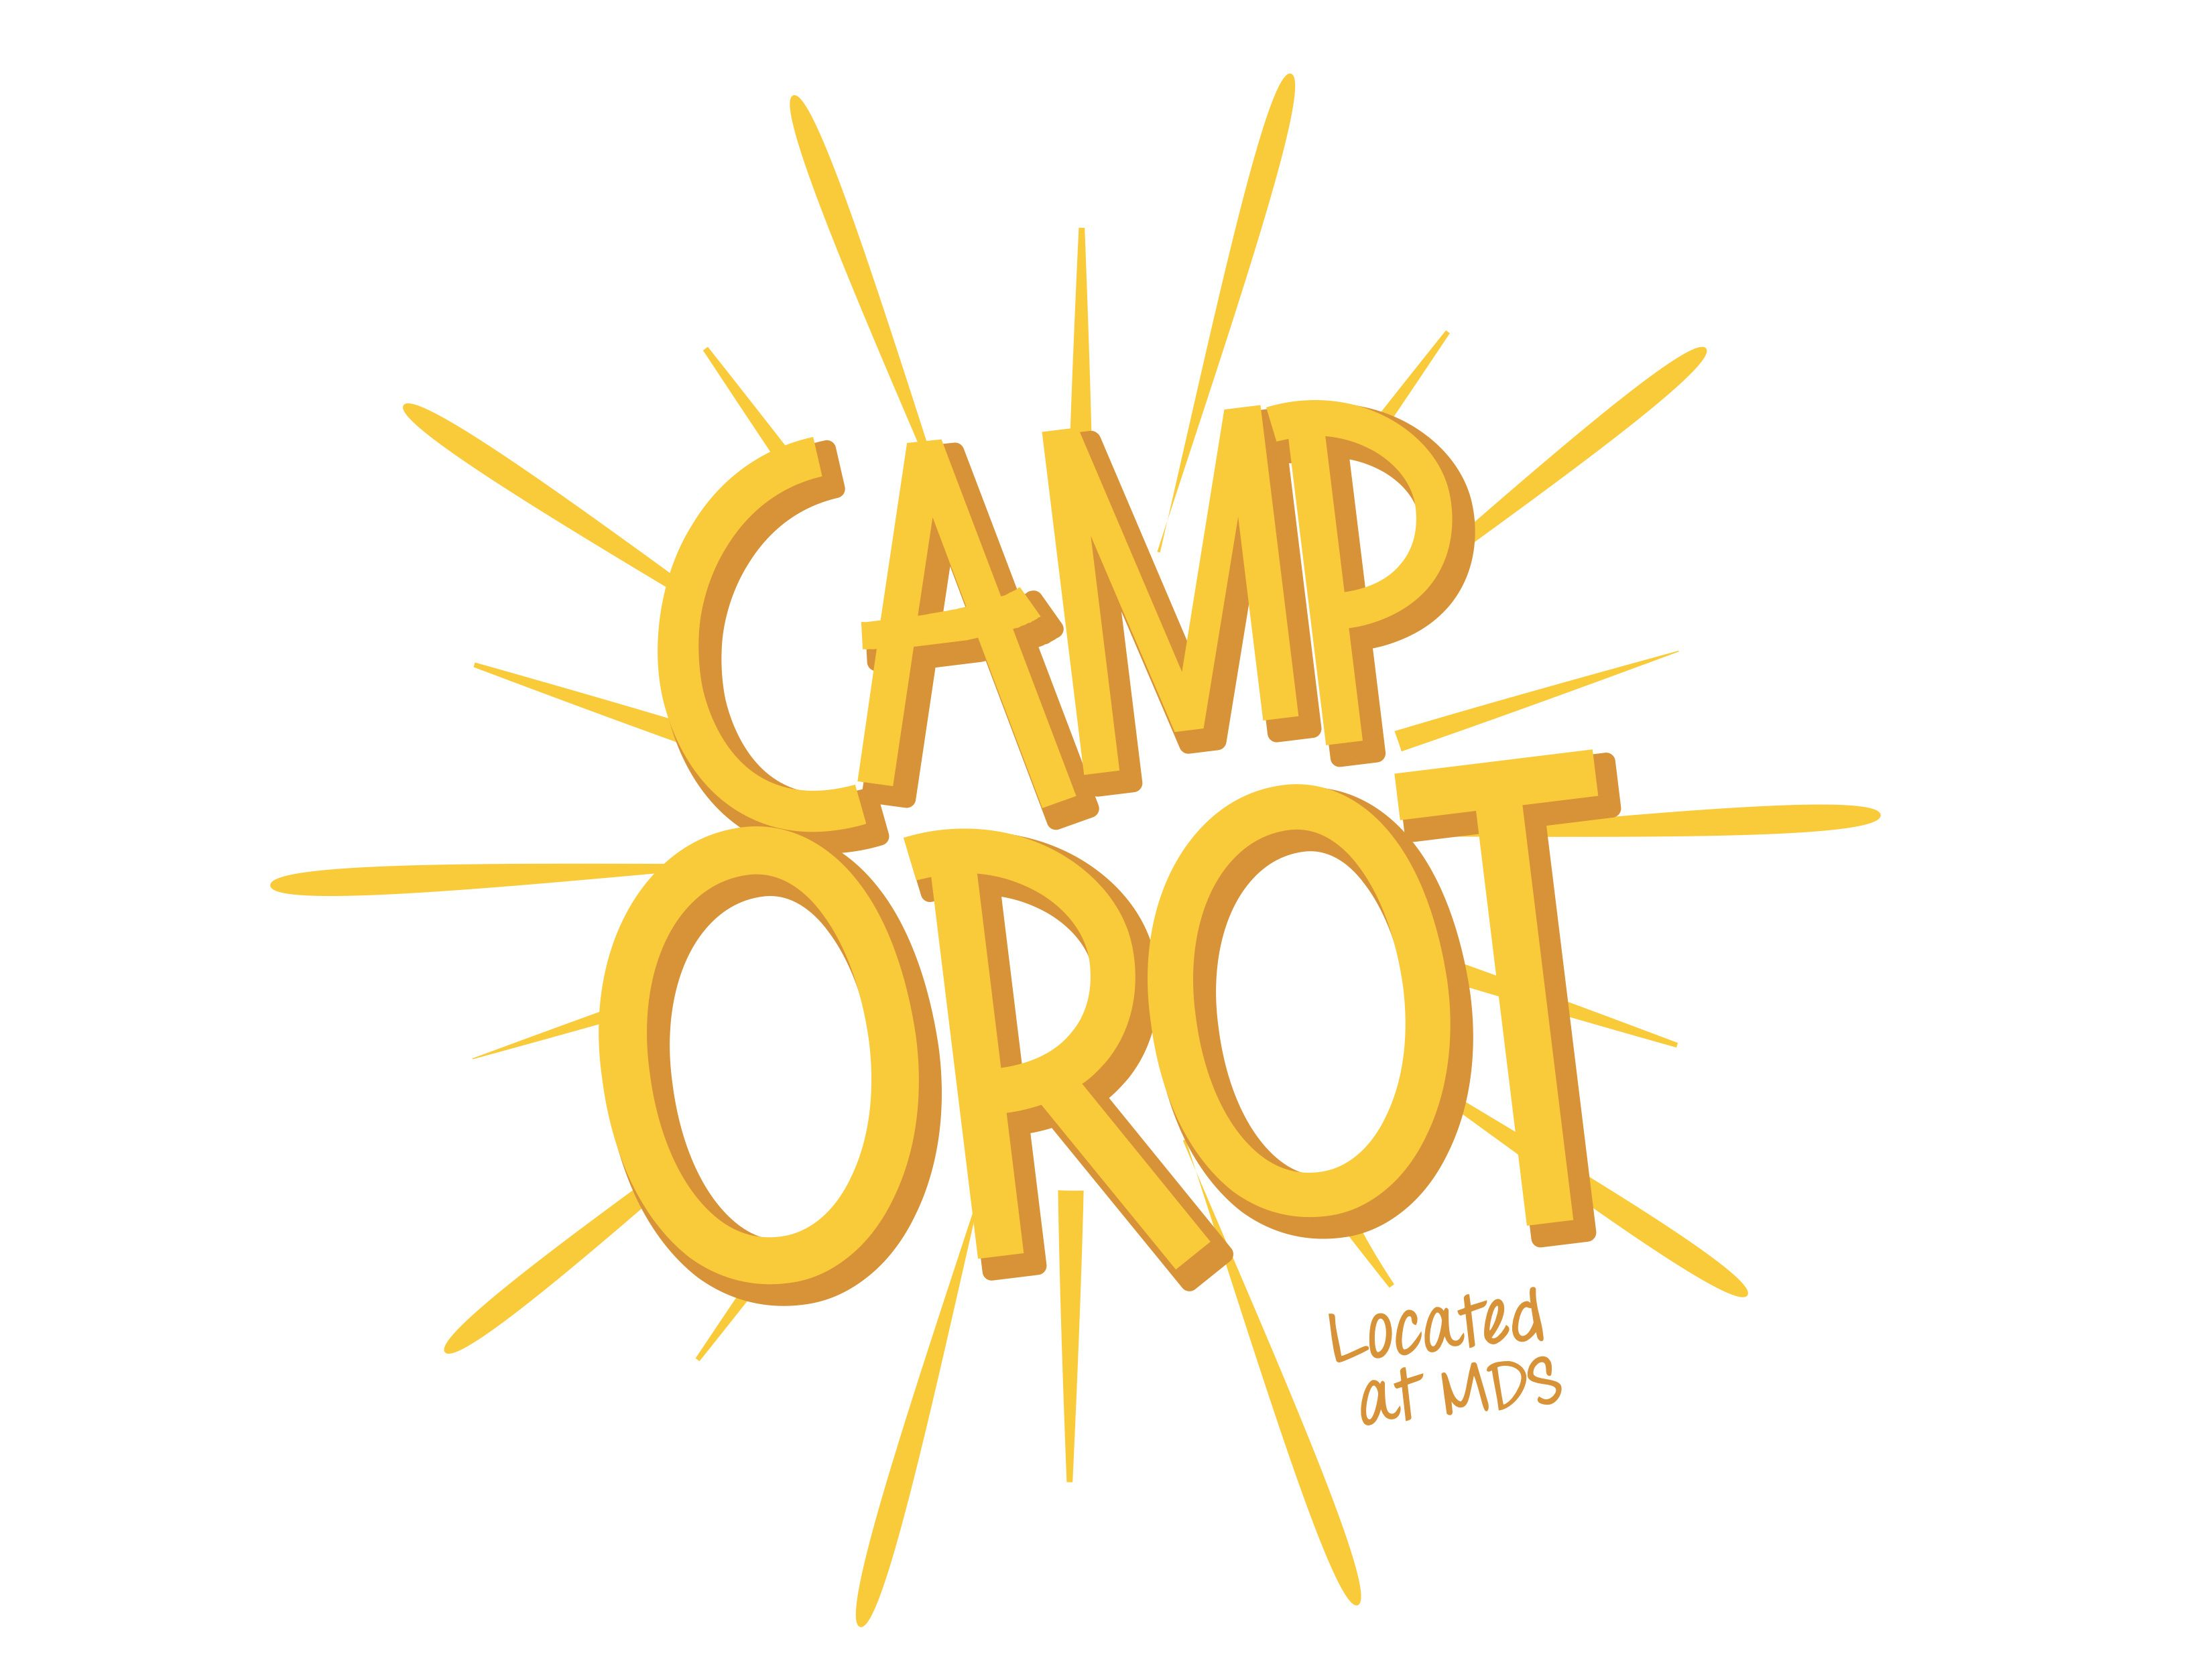 Camp Orot